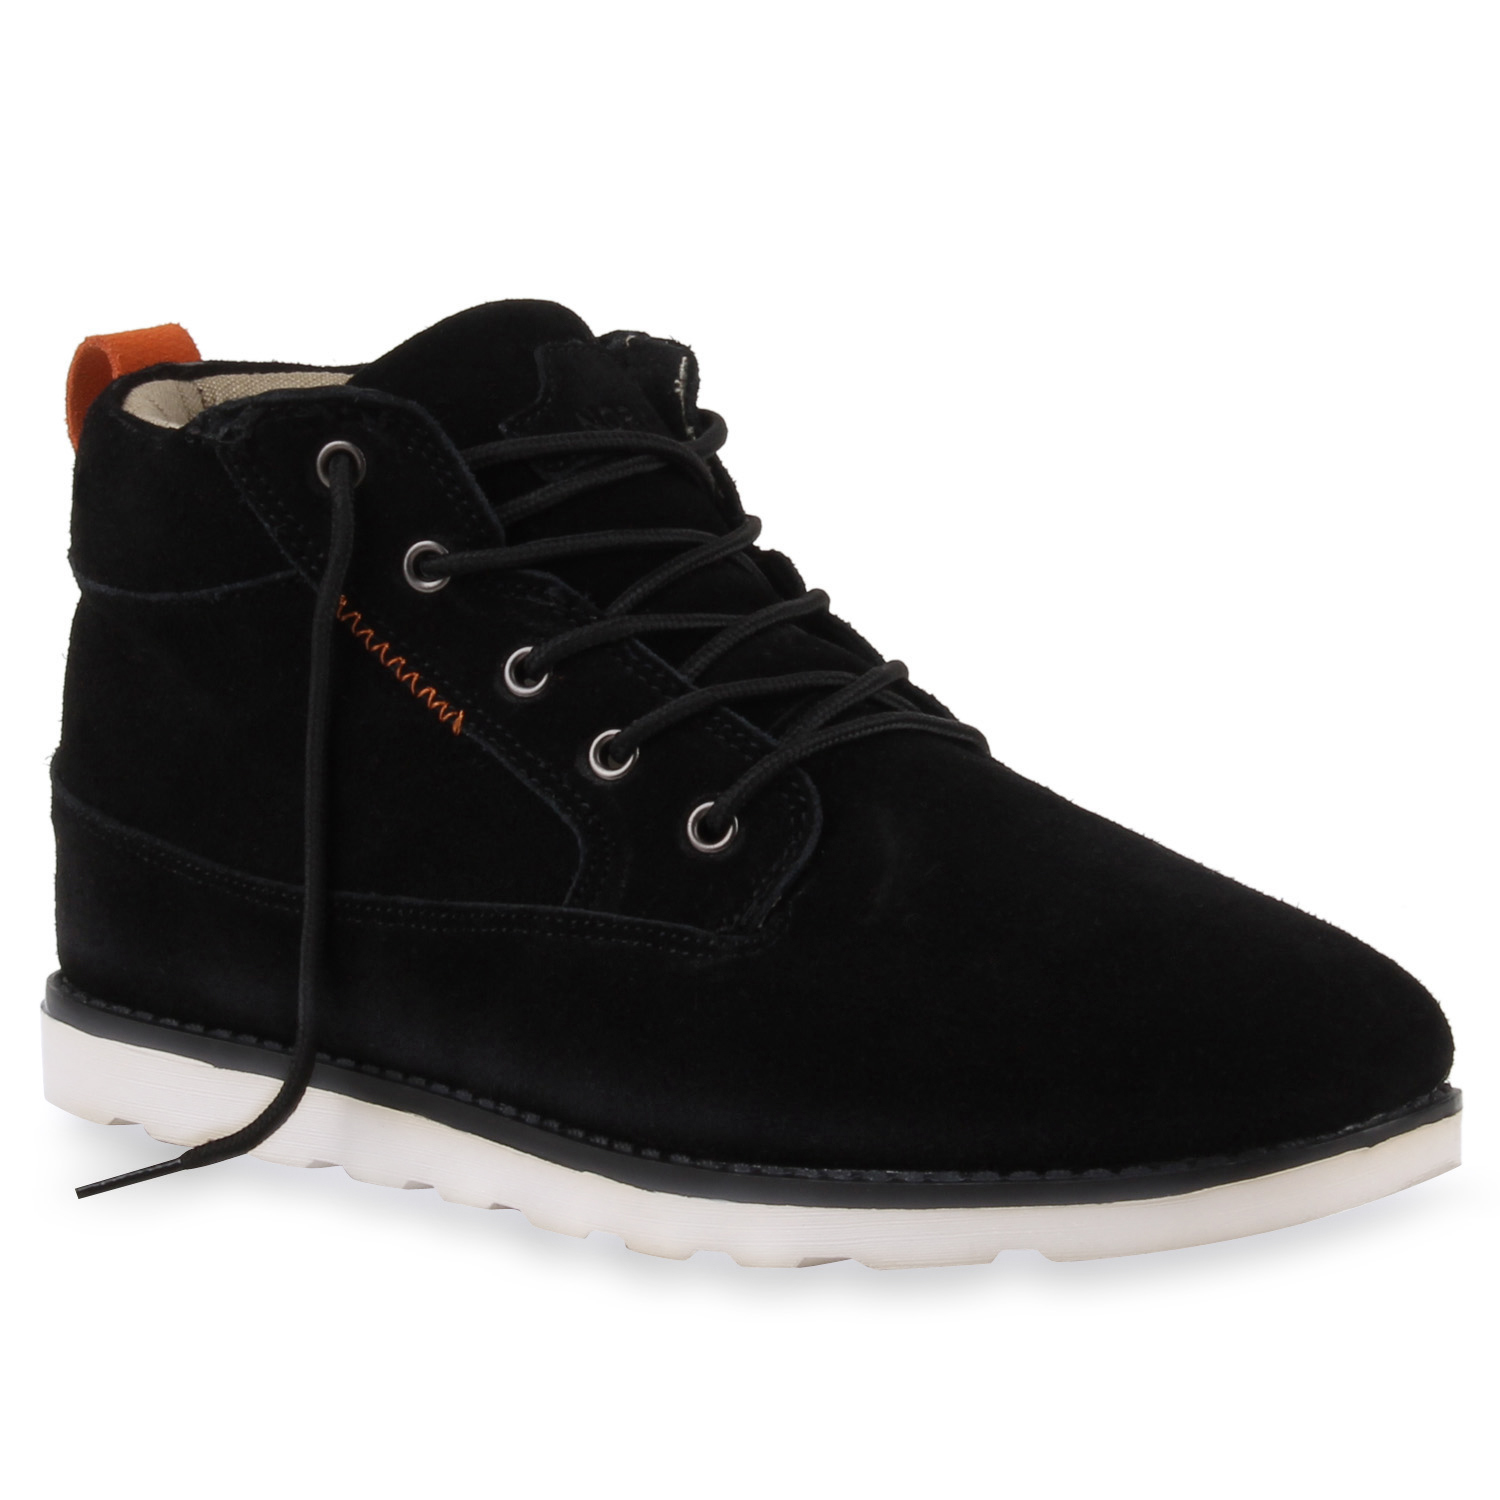 warm gef tterte herren sneakers high top winter schuhe 74157 trendy ebay. Black Bedroom Furniture Sets. Home Design Ideas